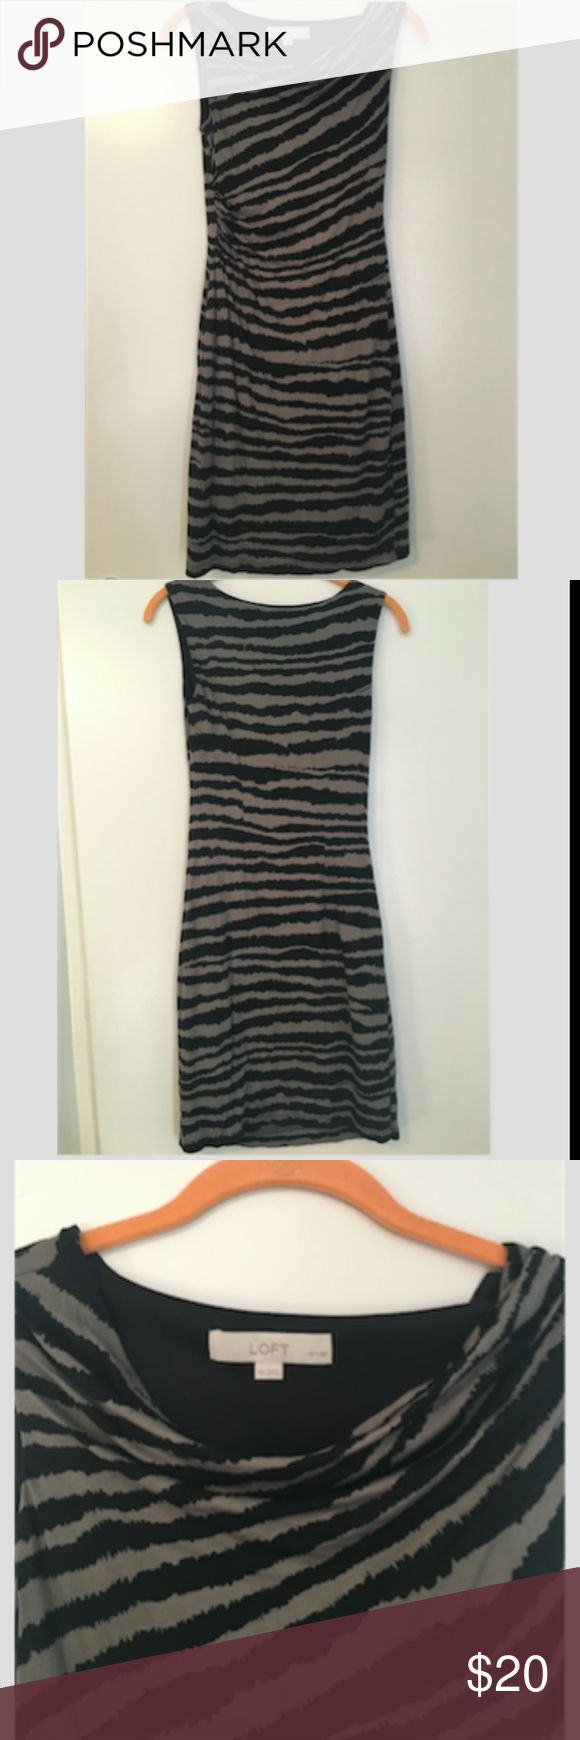 Loft Animal Print Dress with Gathered Side Petite Loft animal print dress with tank top straps and gathered side. Stripes are black and greige/gray. Fully lined, hits approx. above the knee. Shell is 70% rayon, 30% tencel. Lining is 100% polyester. Worn a handful of times. Great date night dress! LOFT Dresses